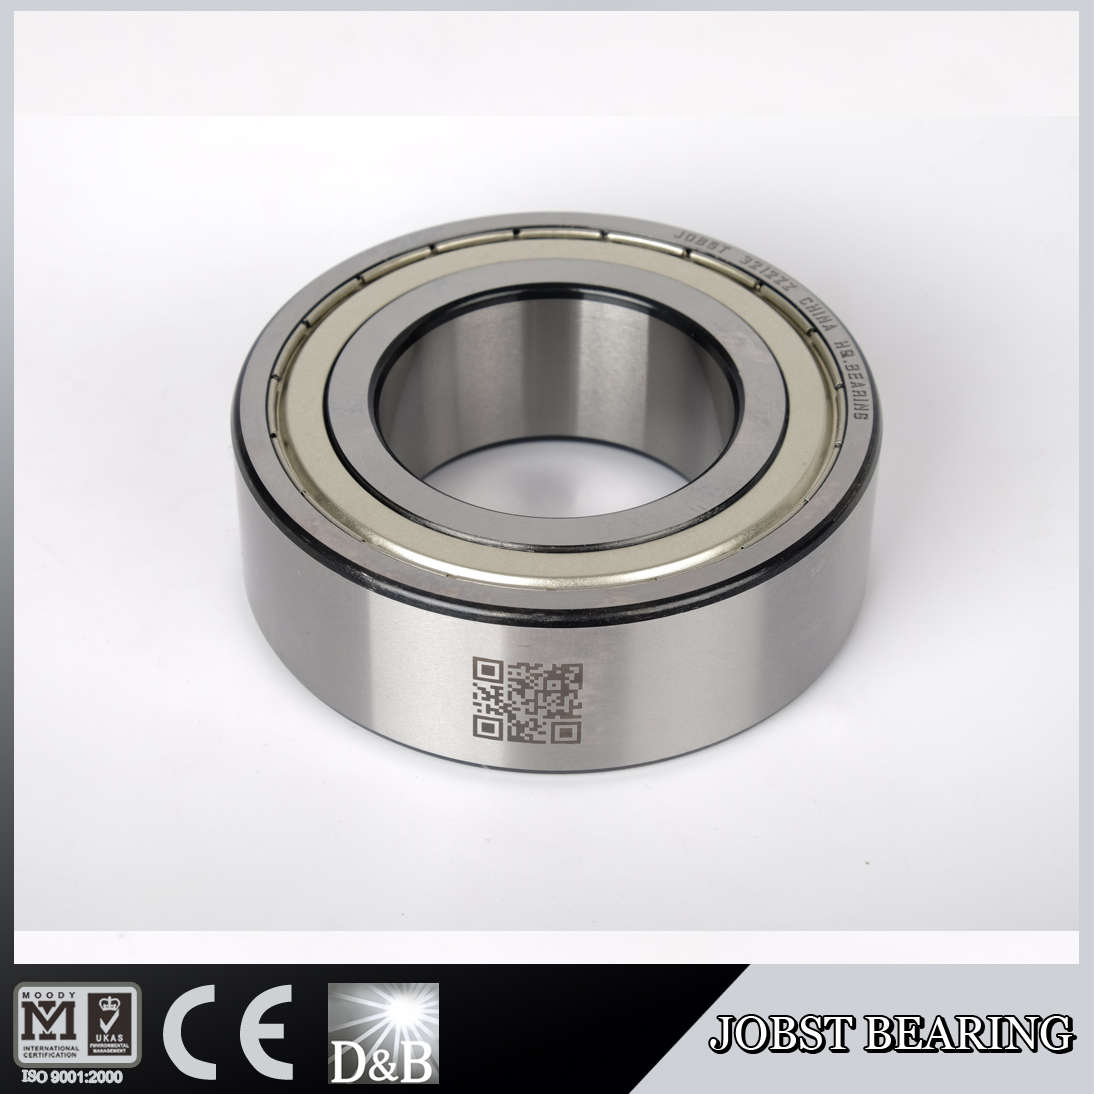 Thrust bearing catalogue - Scribd